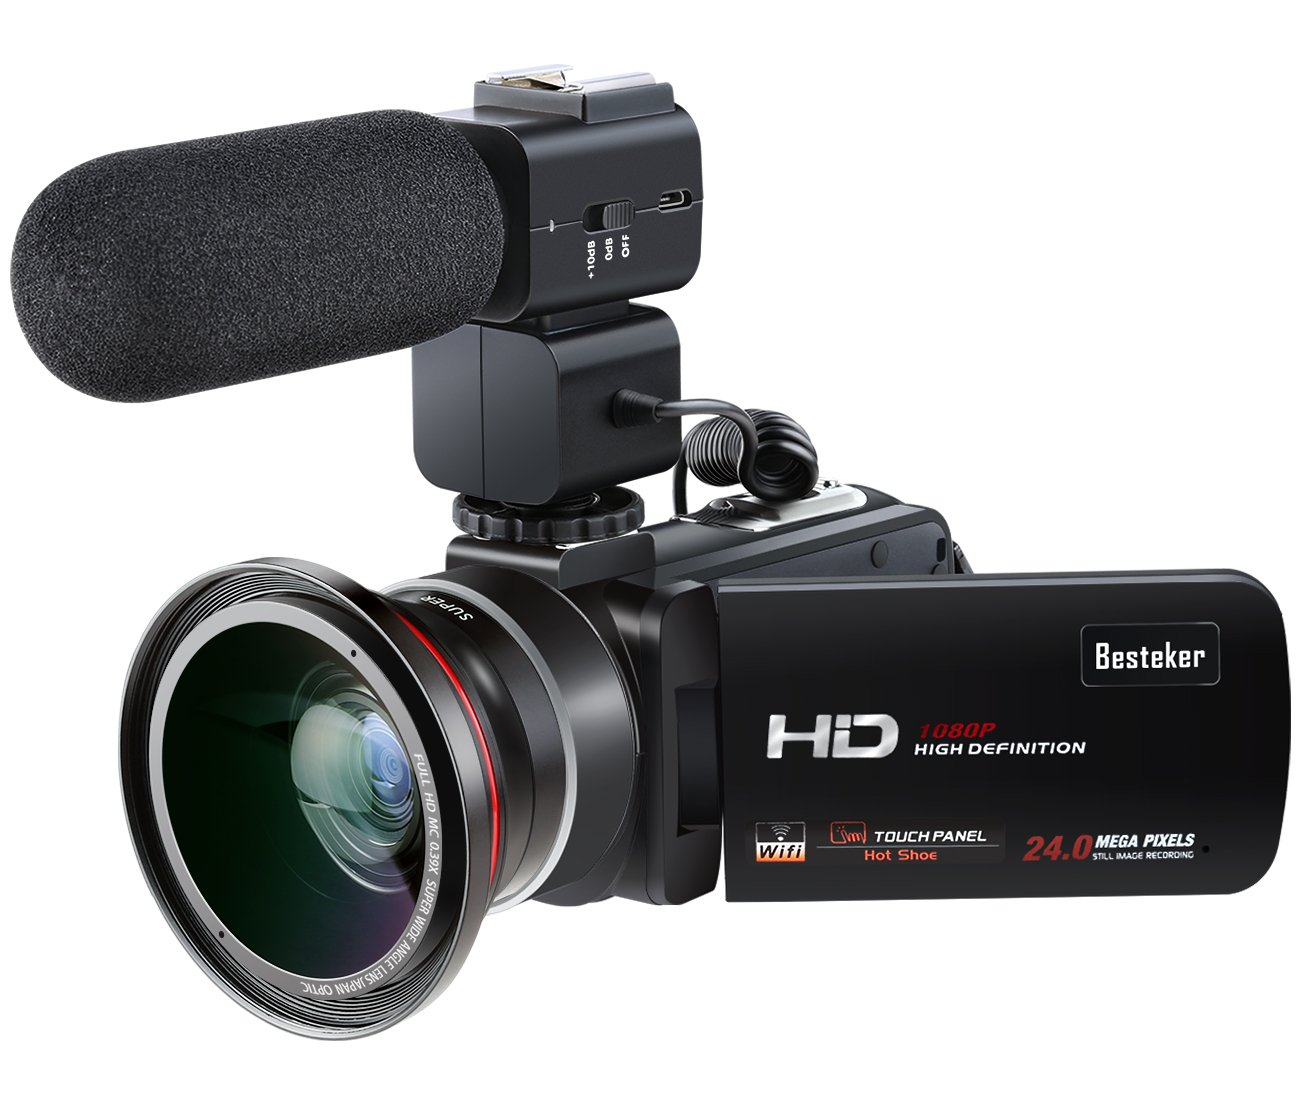 Video Camcorder,Besteker 1080P 30FPS Wifi Camcorders Full HD Portable Digital Video Camera with External Microphone and Wide Angle Lens by Besteker